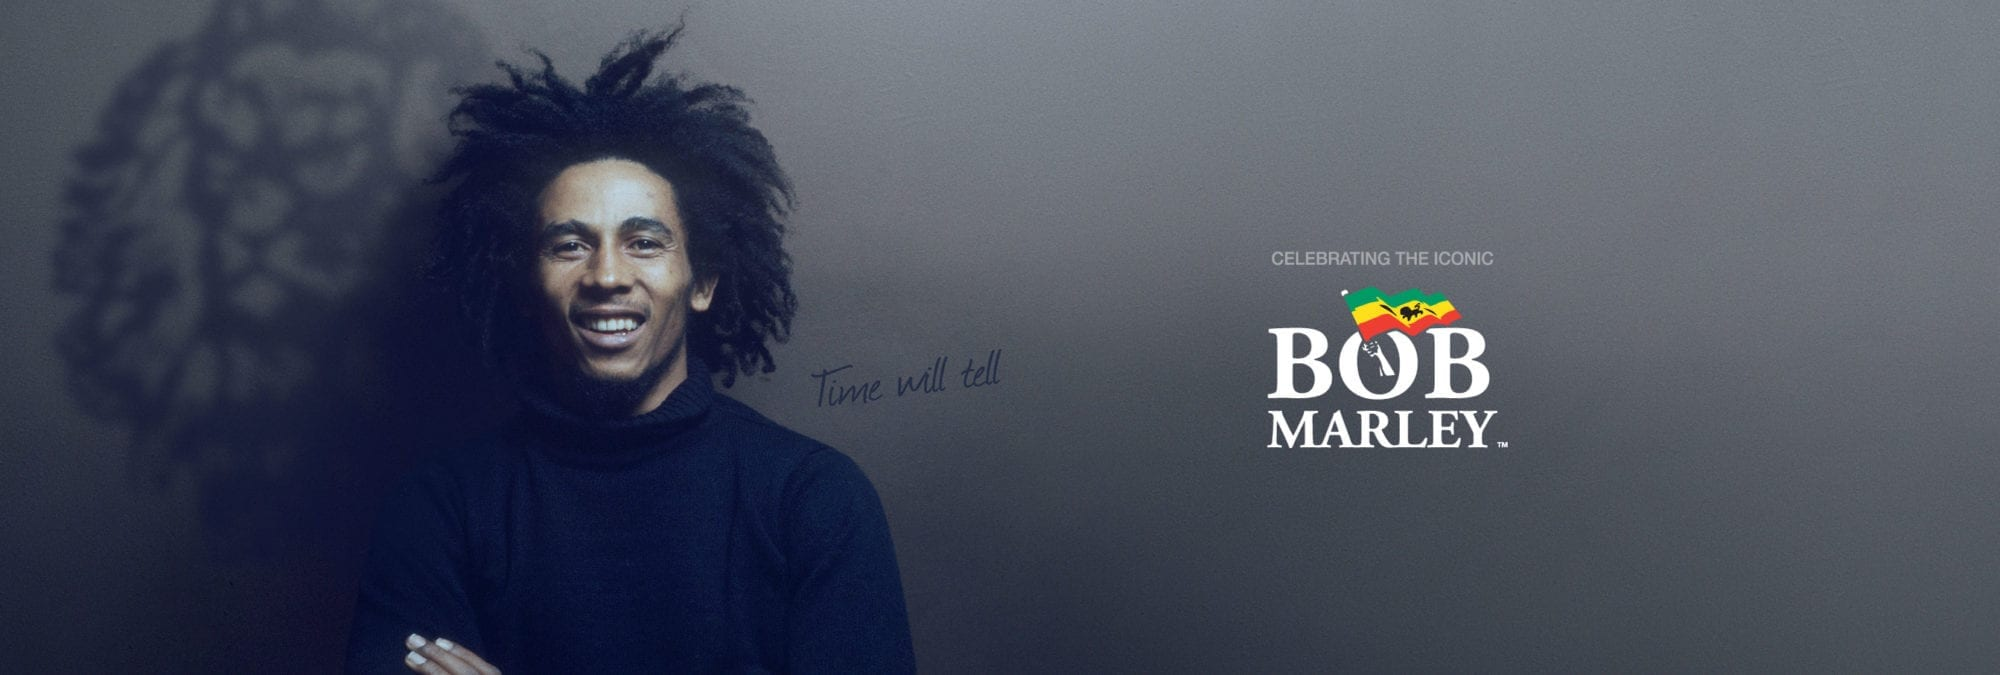 Celebrating the Iconic Bob Marley